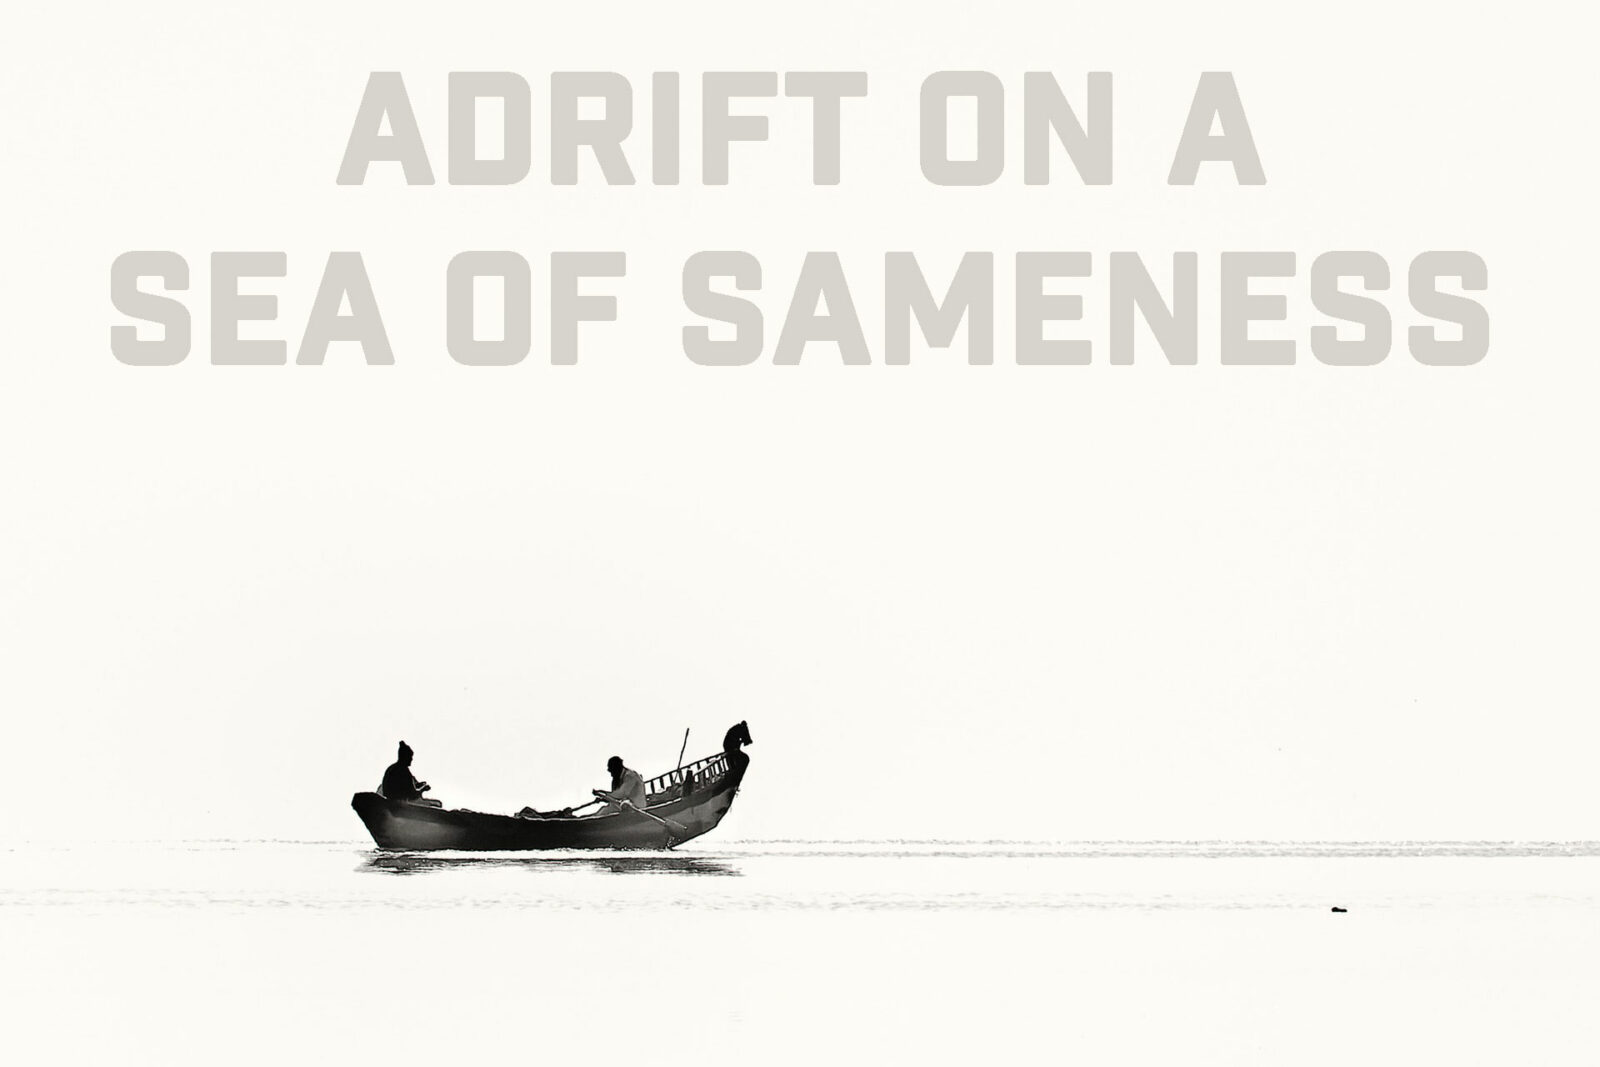 Adrift on a Sea of Sameness